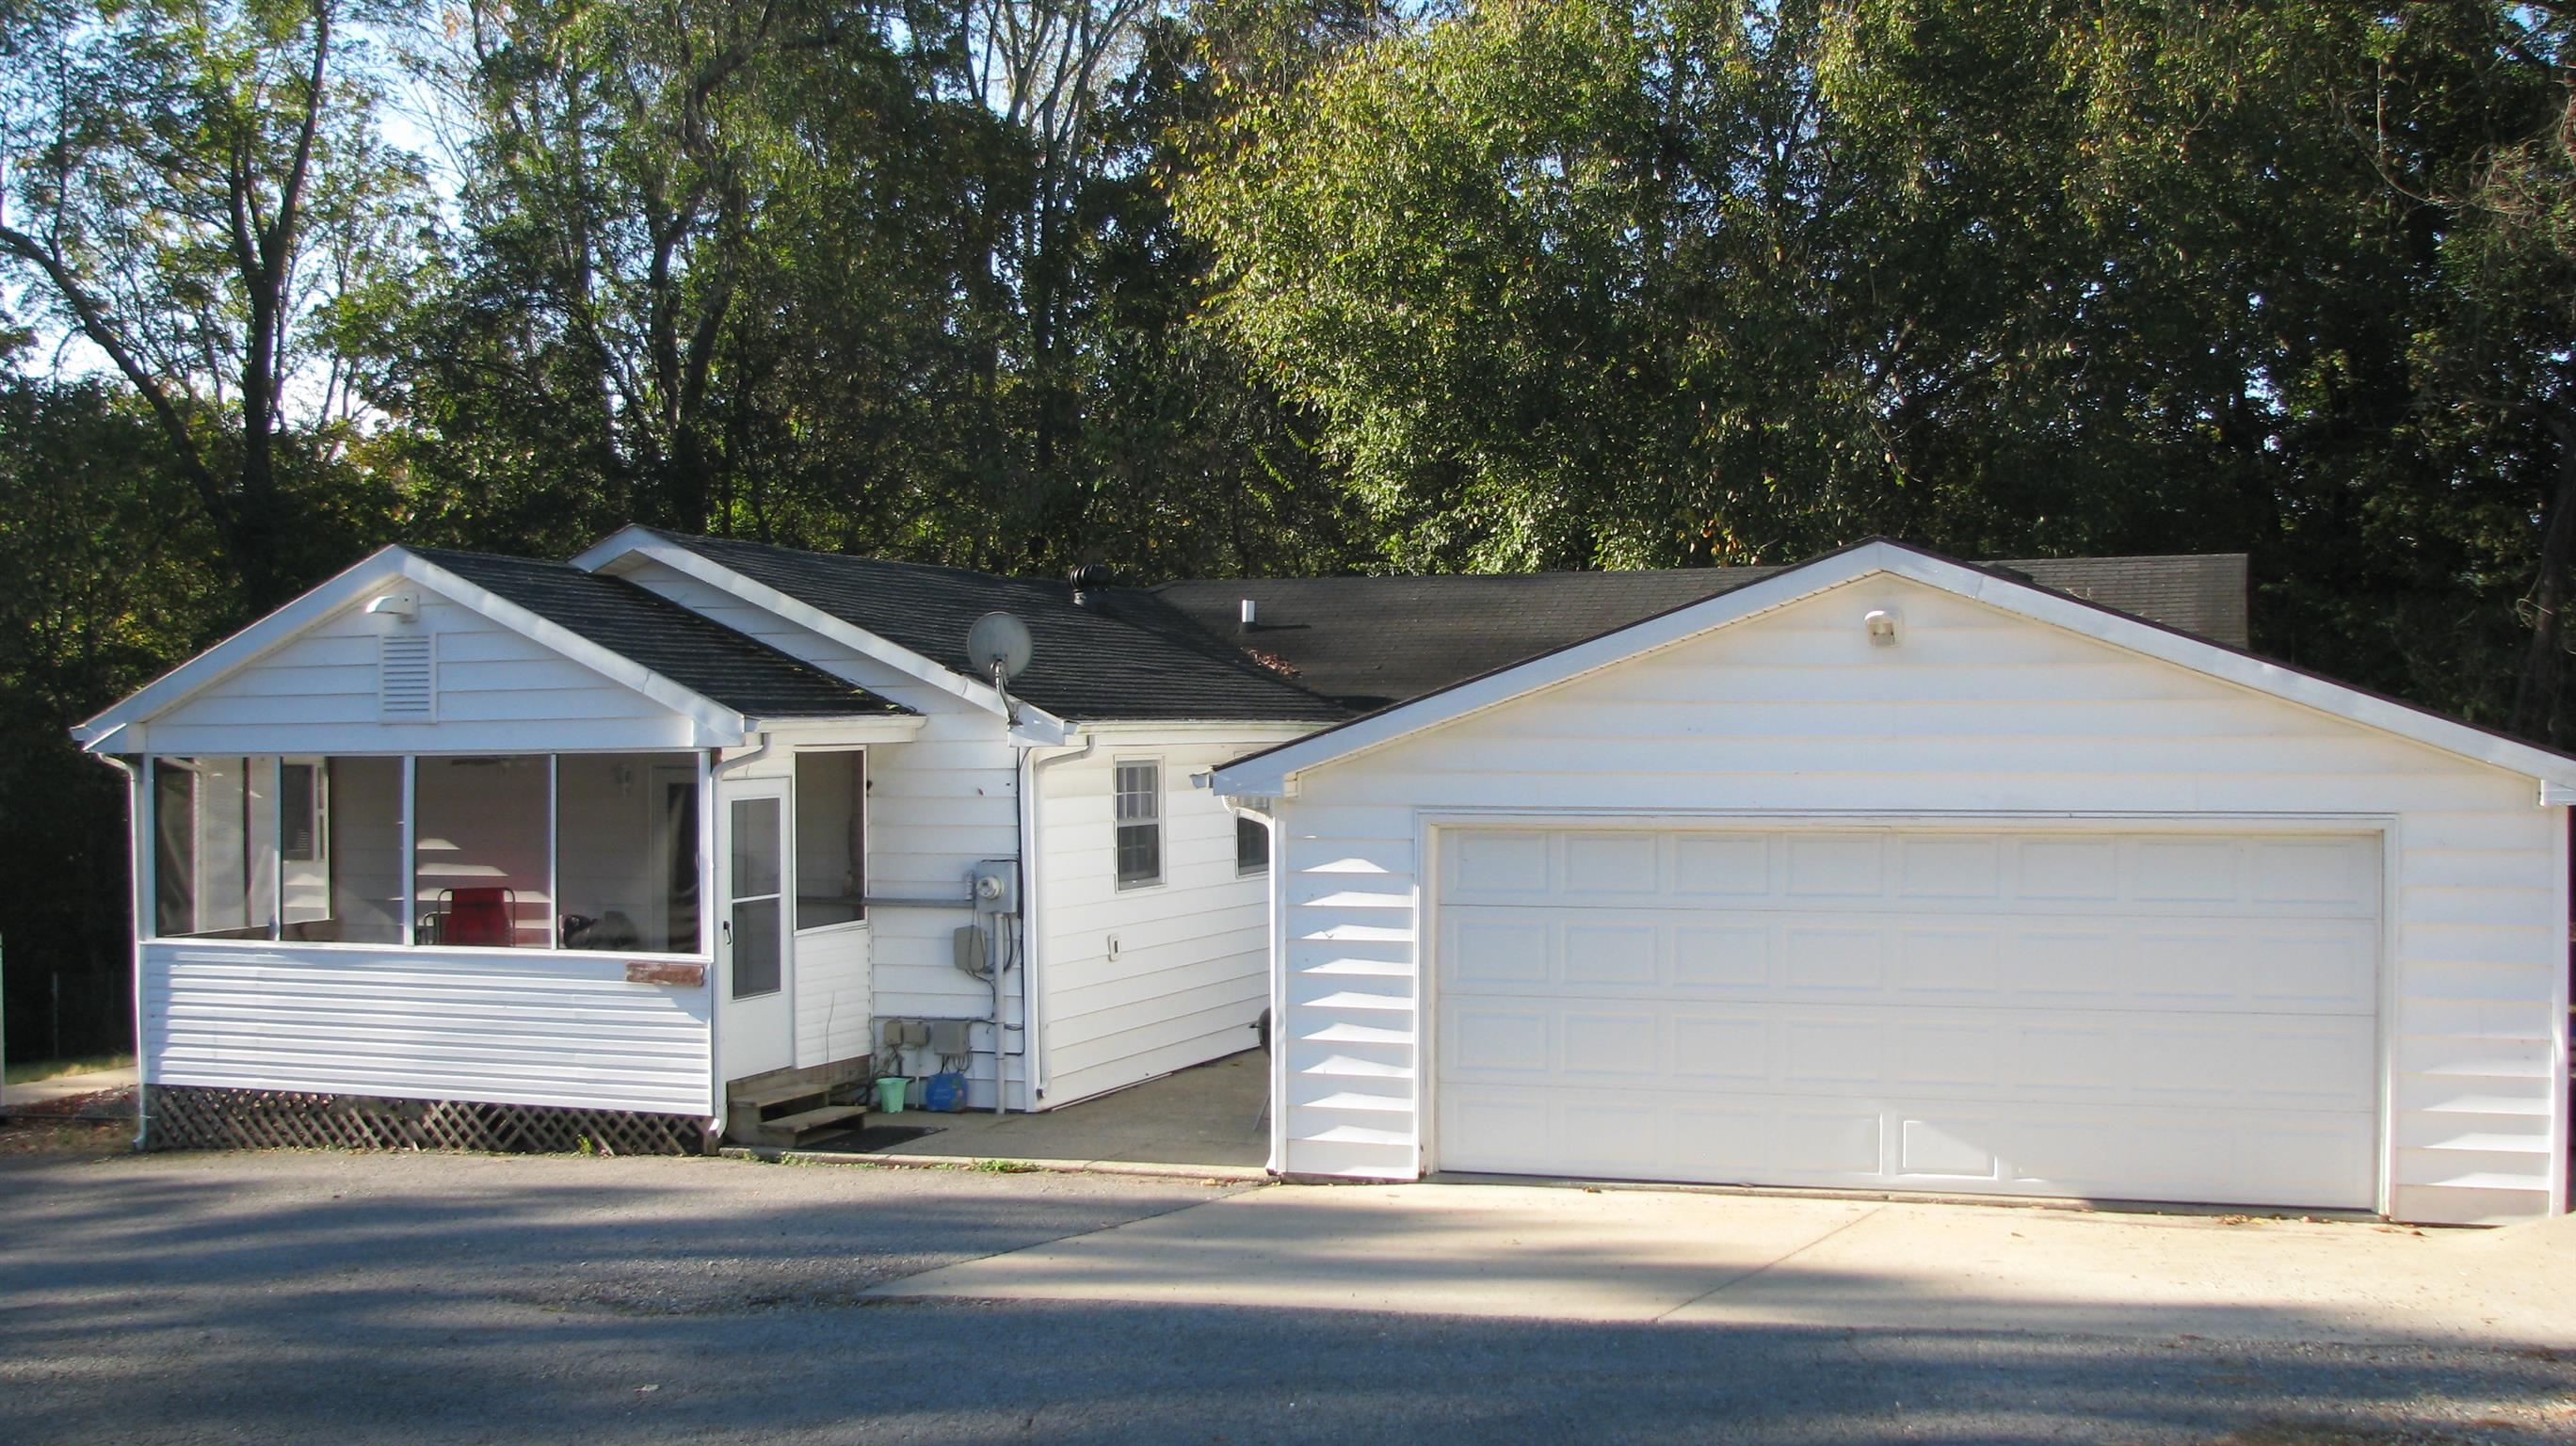 298 Tobacco Rd, Clarksville, TN 37042 - Clarksville, TN real estate listing